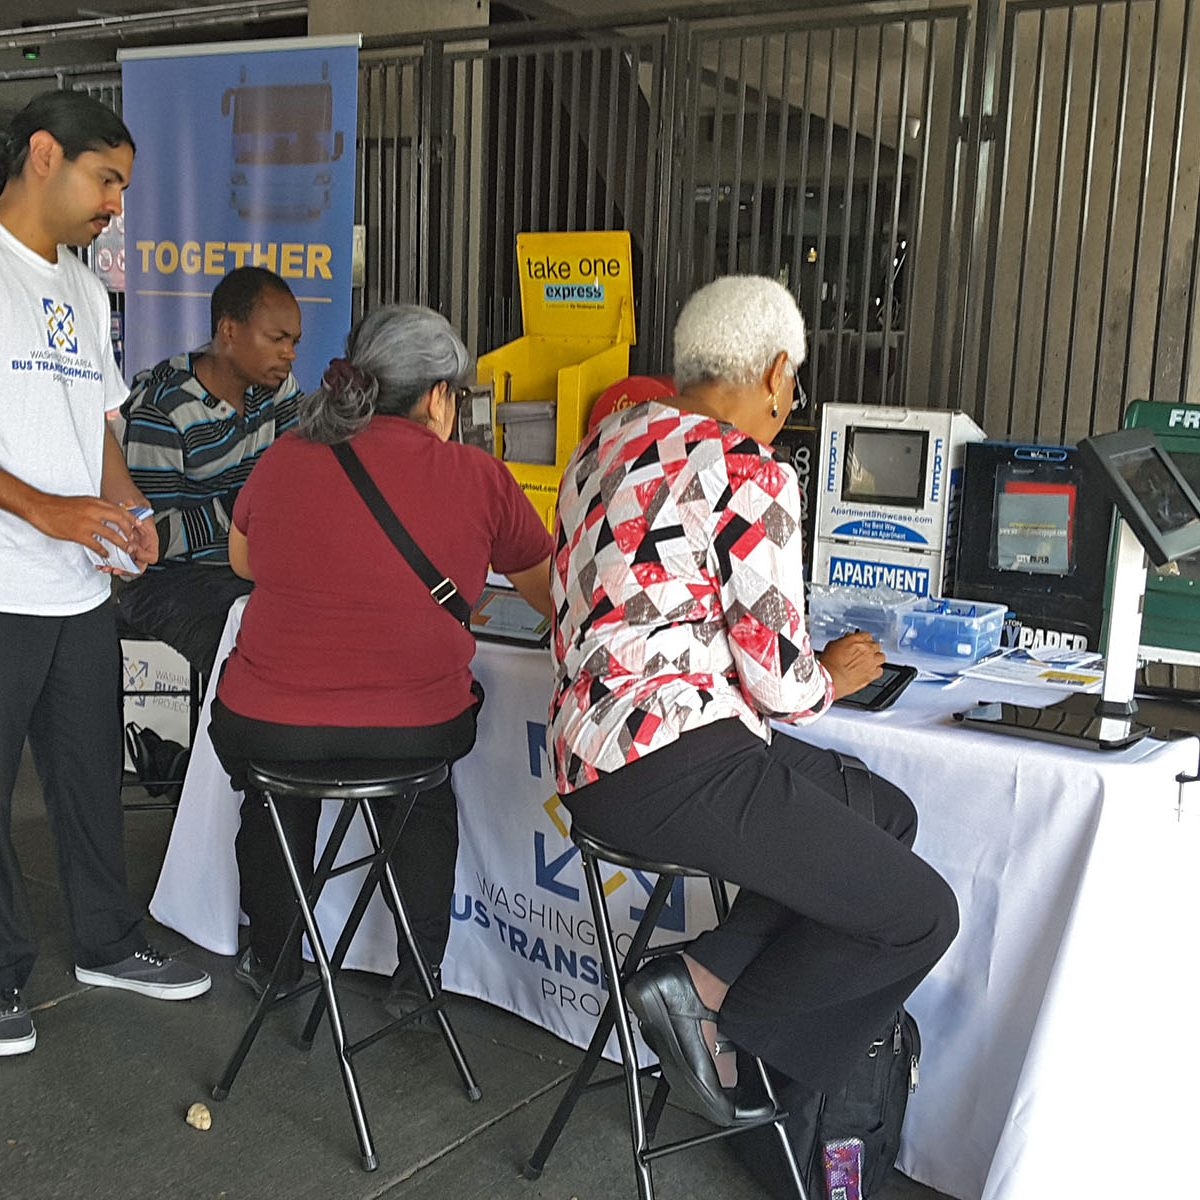 People at the Fort Trotten Metrorail Station Event